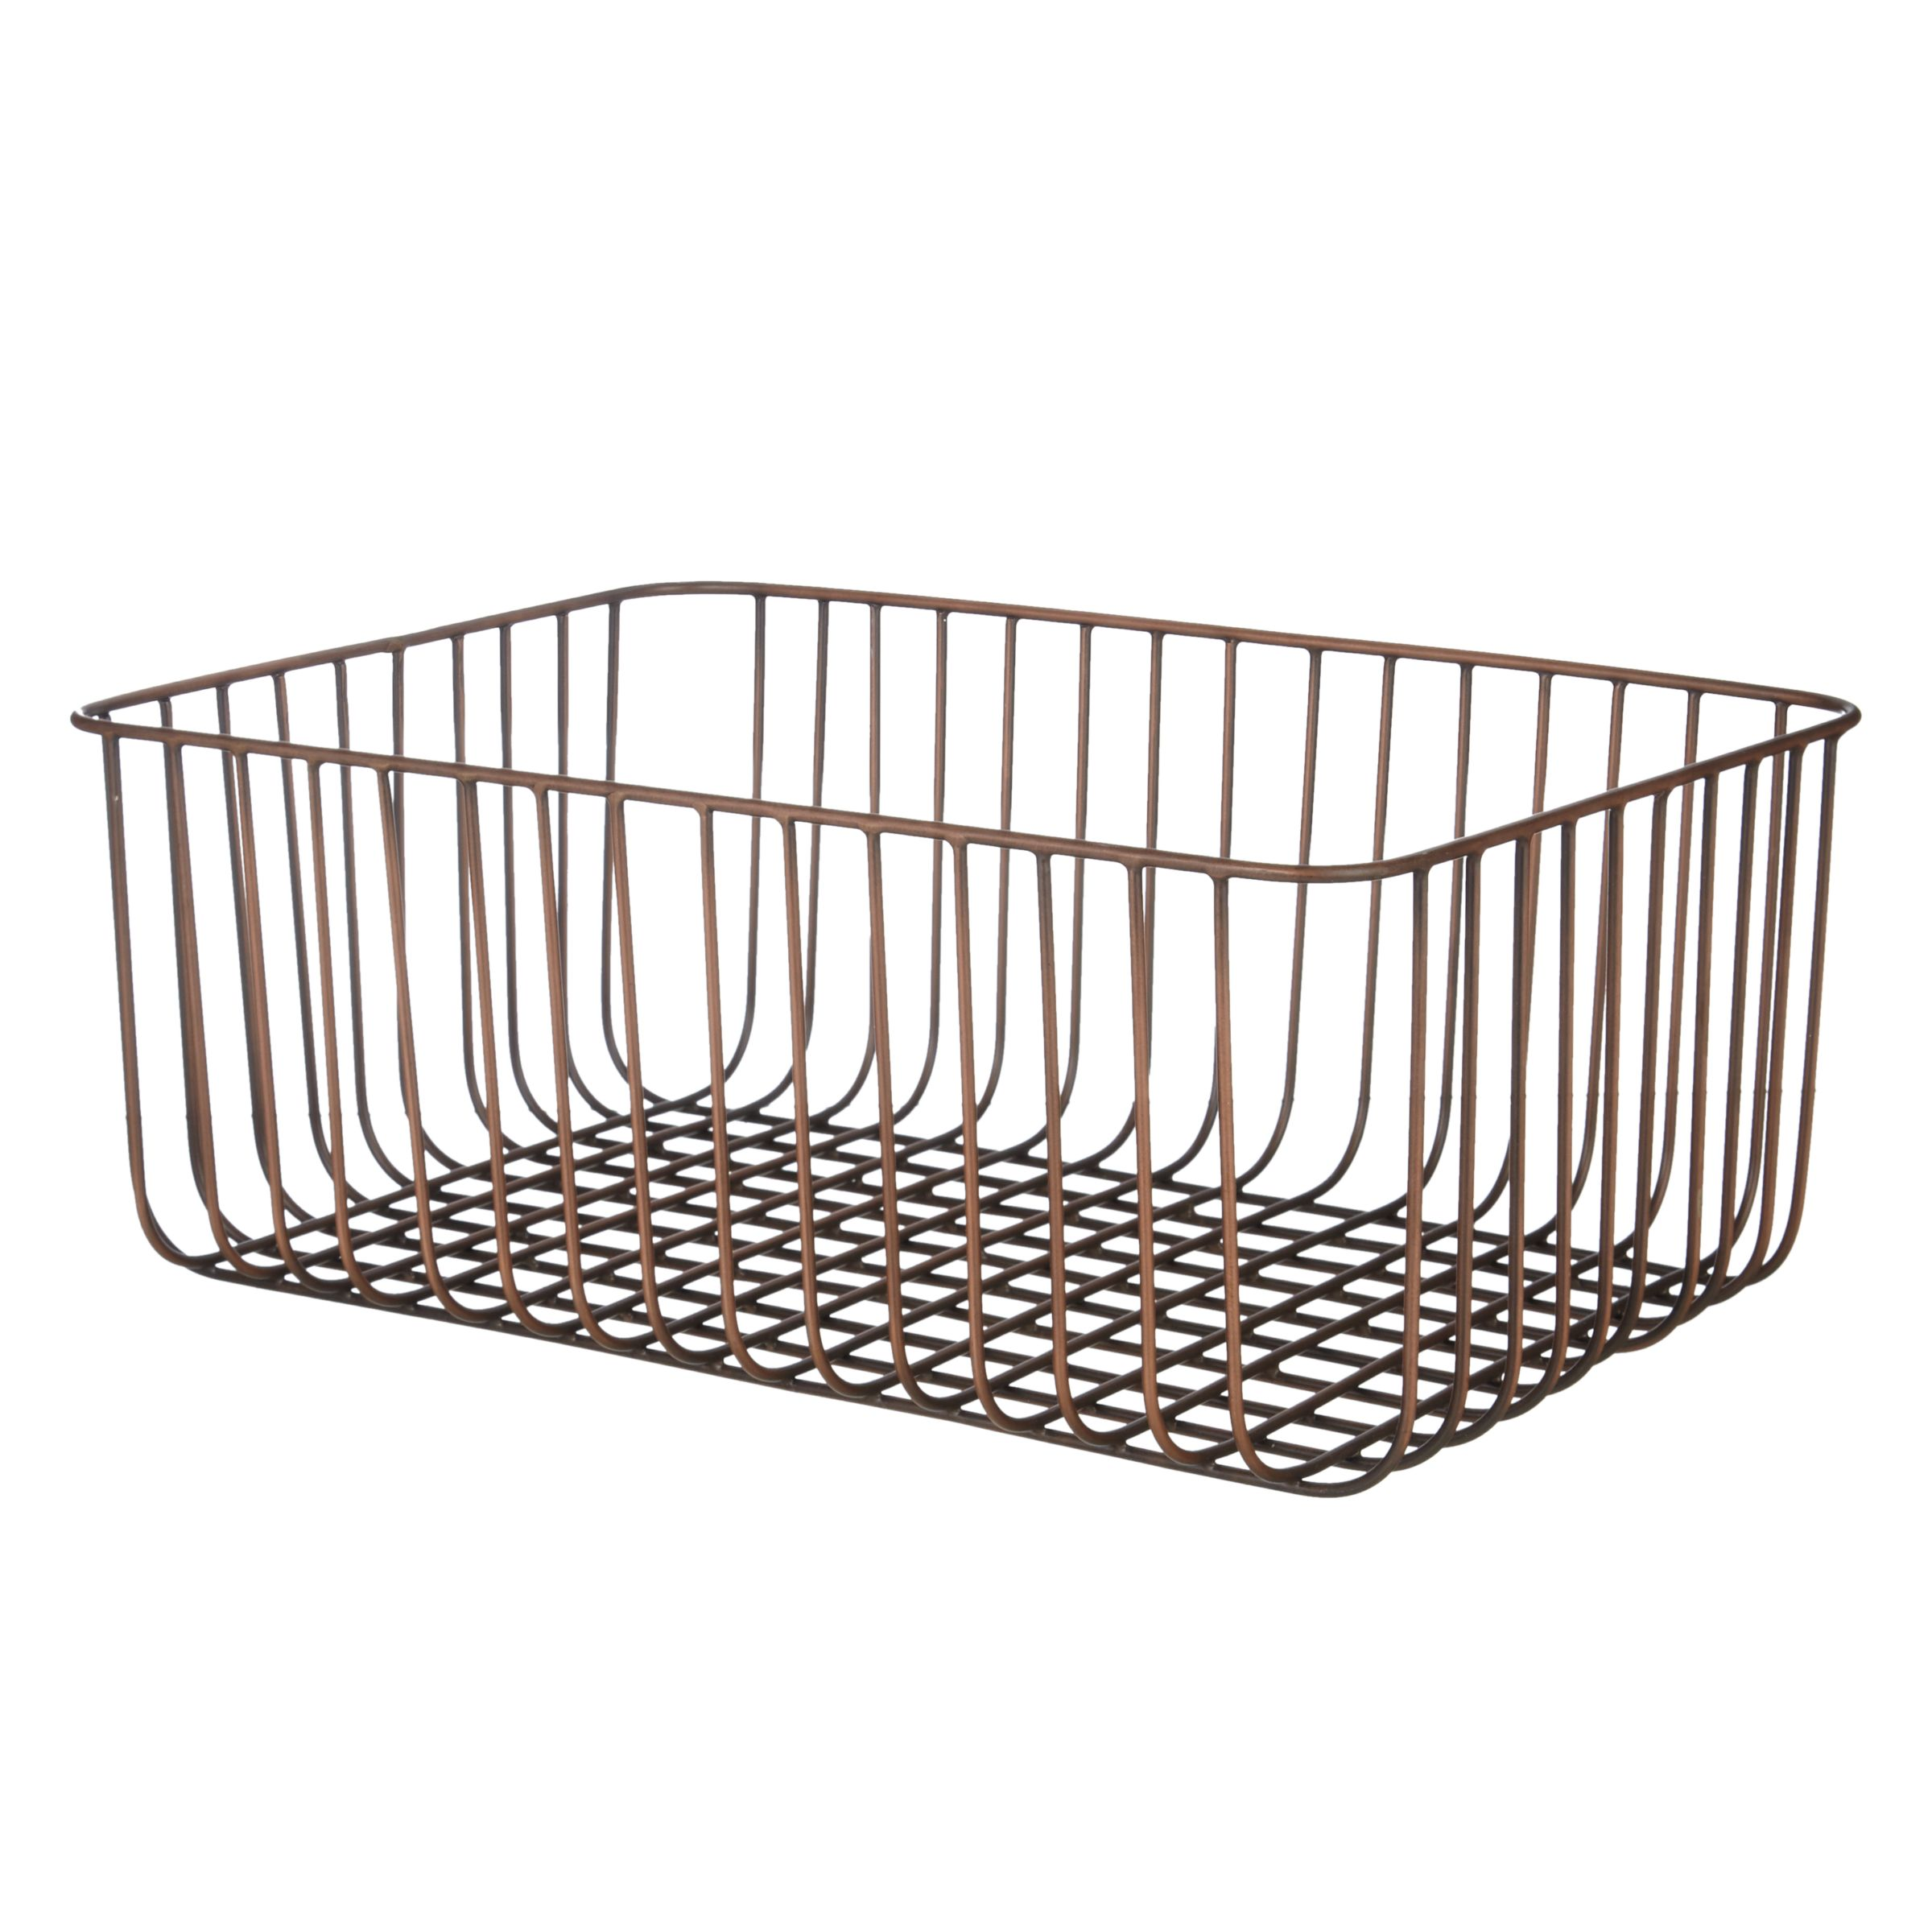 Buy John Lewis Fusion Antique Copper Wire Basket Online at johnlewis.com